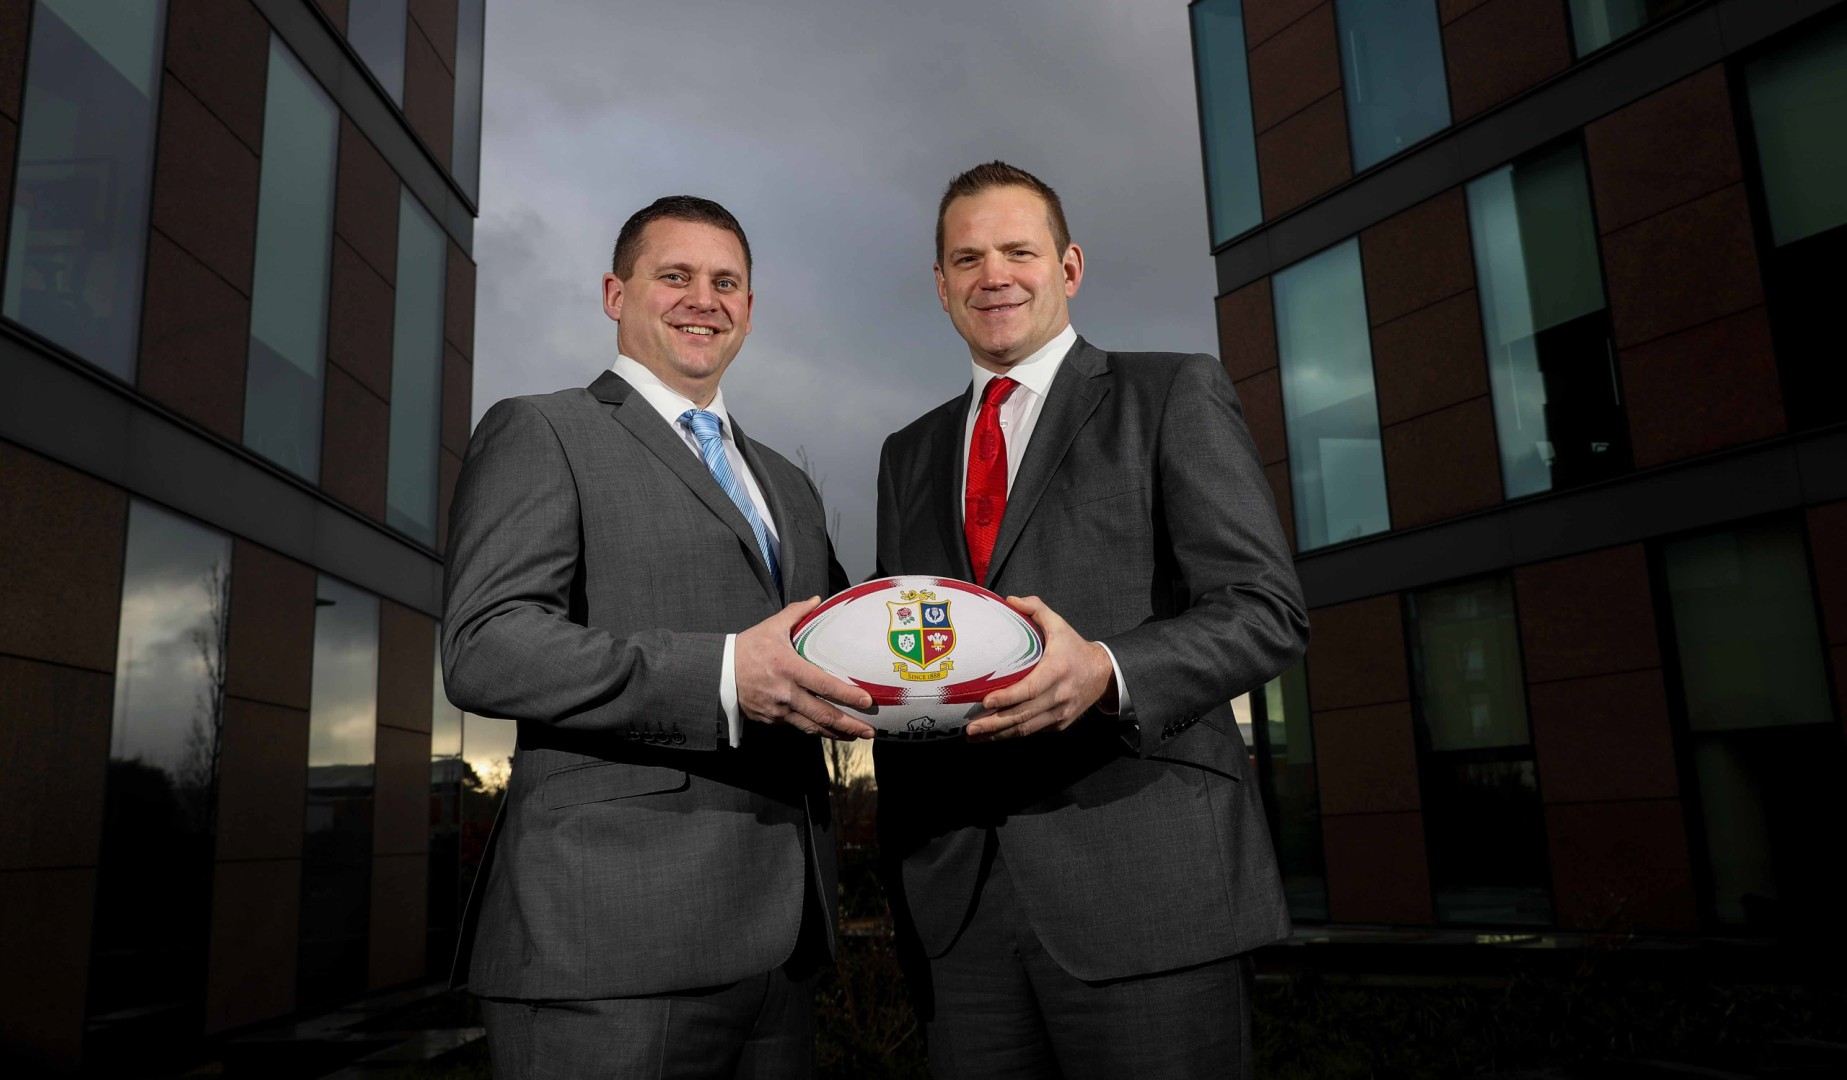 Vivomed to become official supplier to 2017 Lions Tour